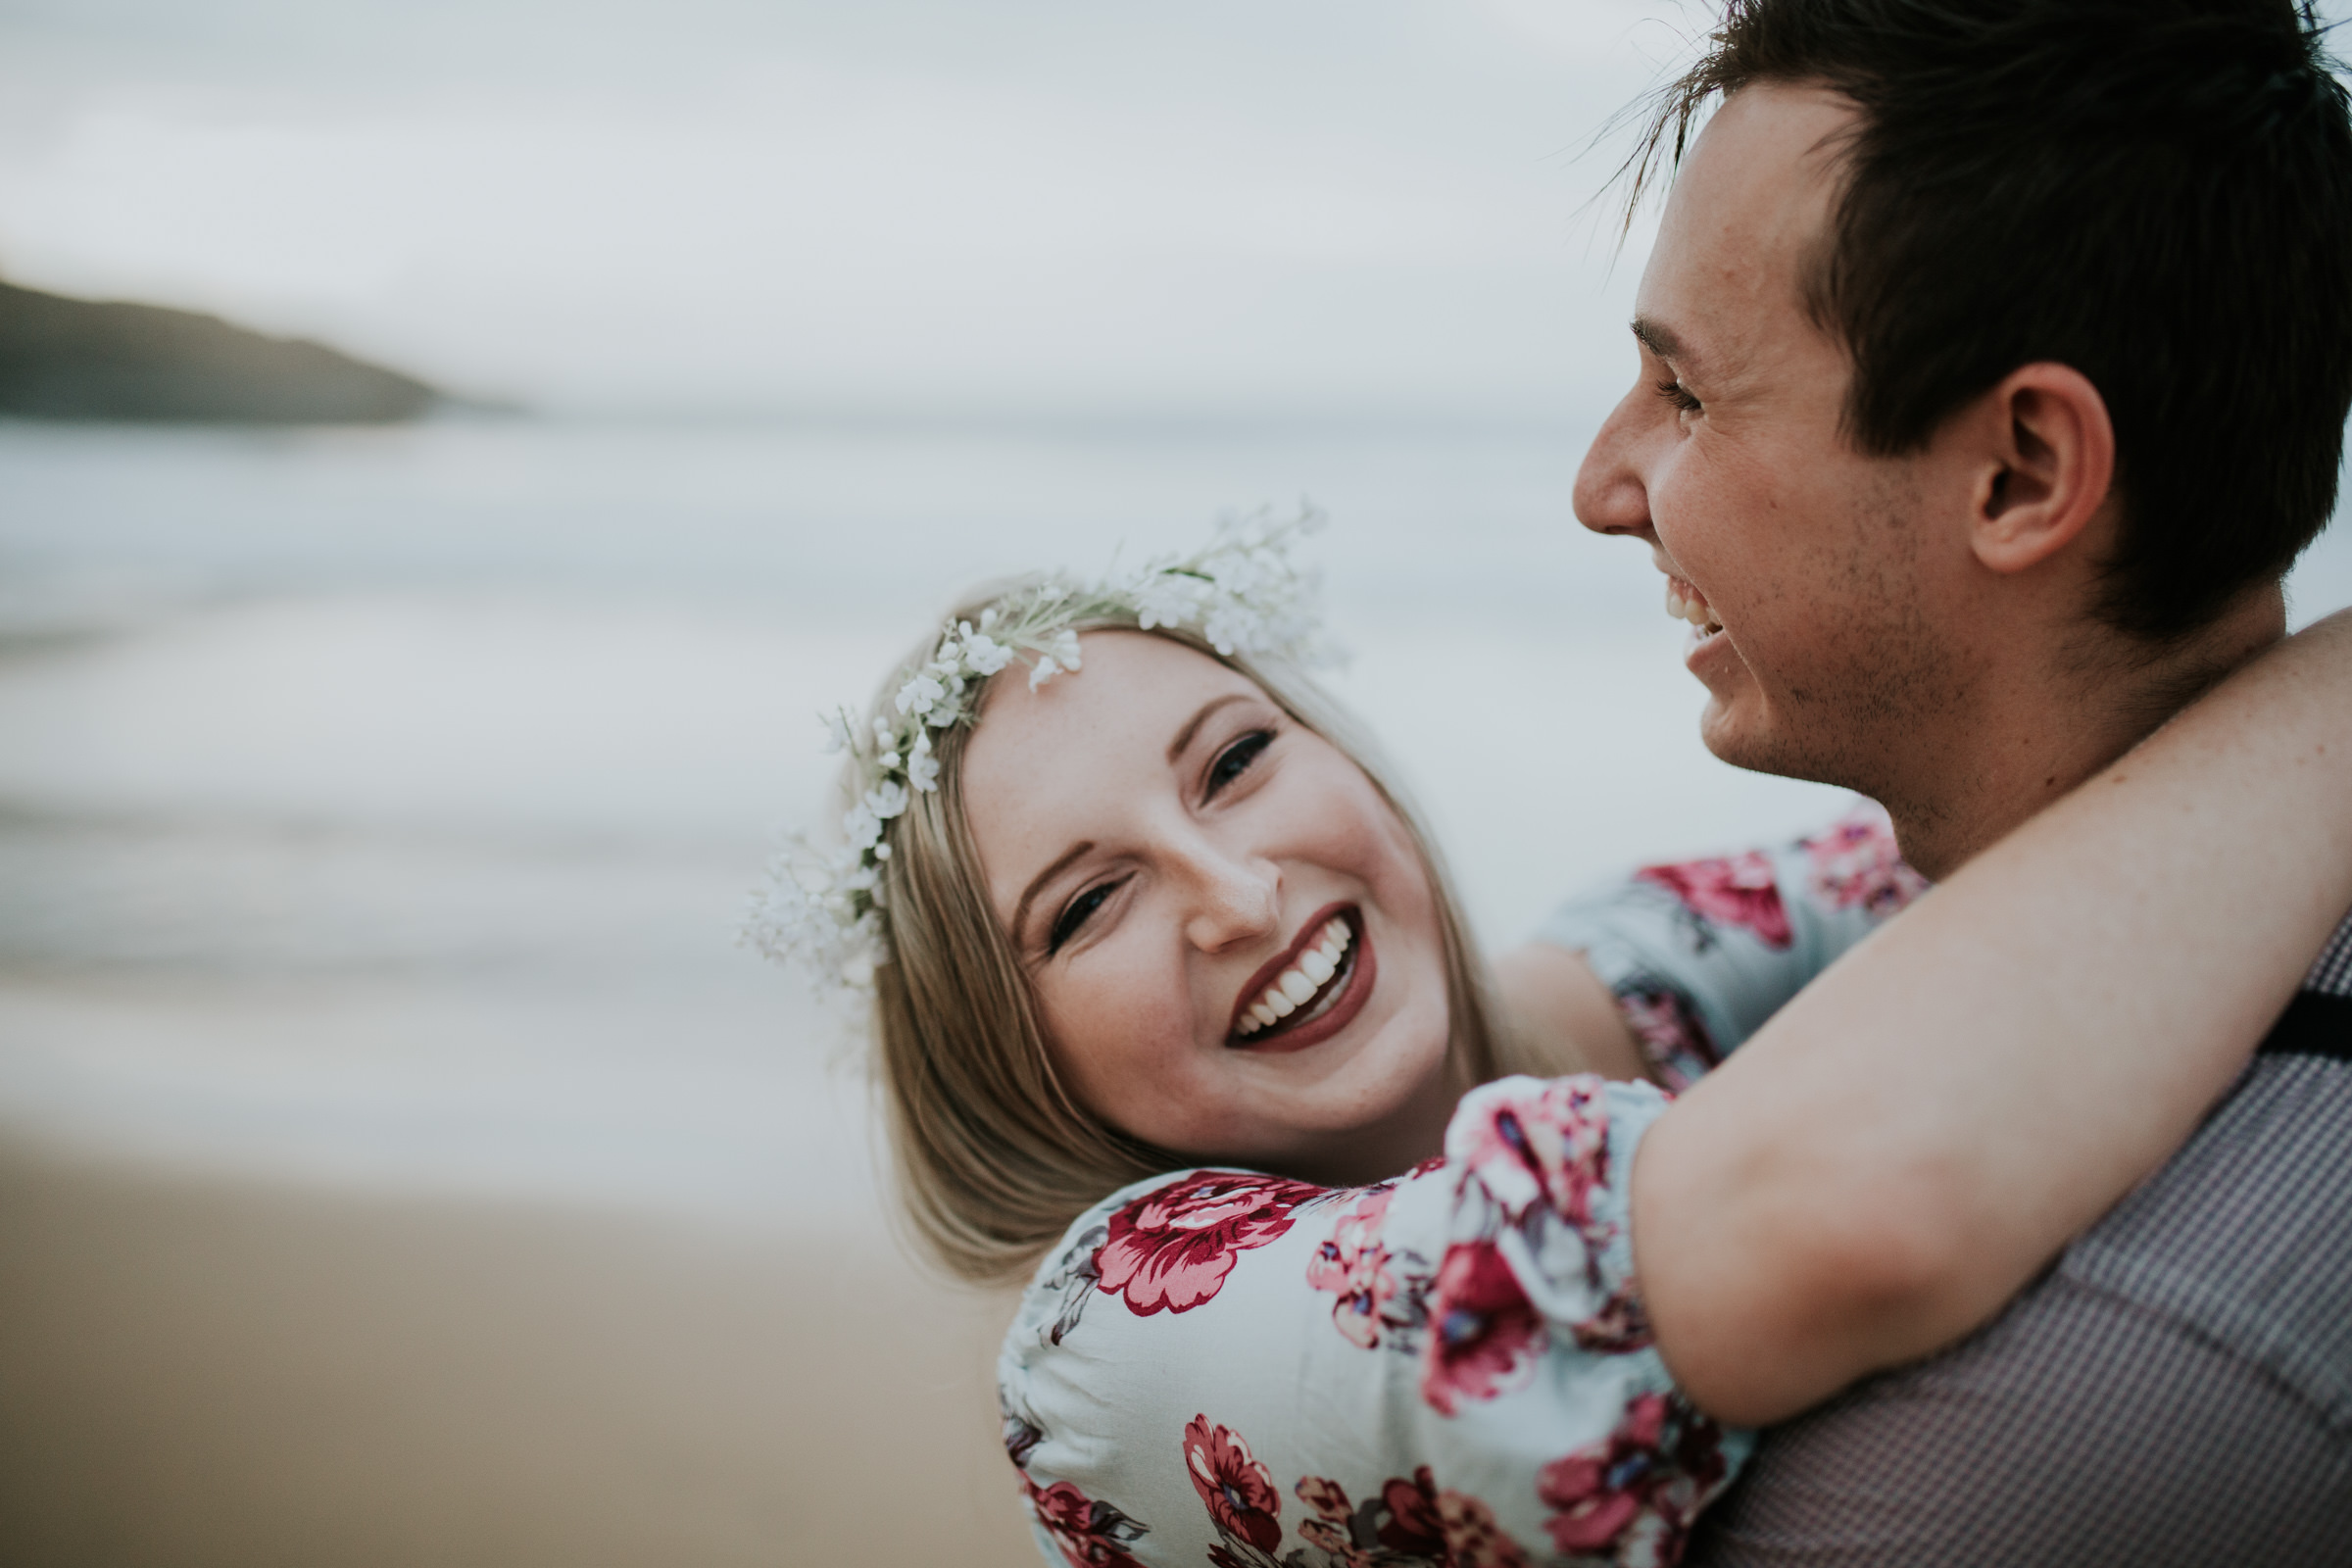 Ebony+Aj+Engagement+Kiama+Beach-5.jpg